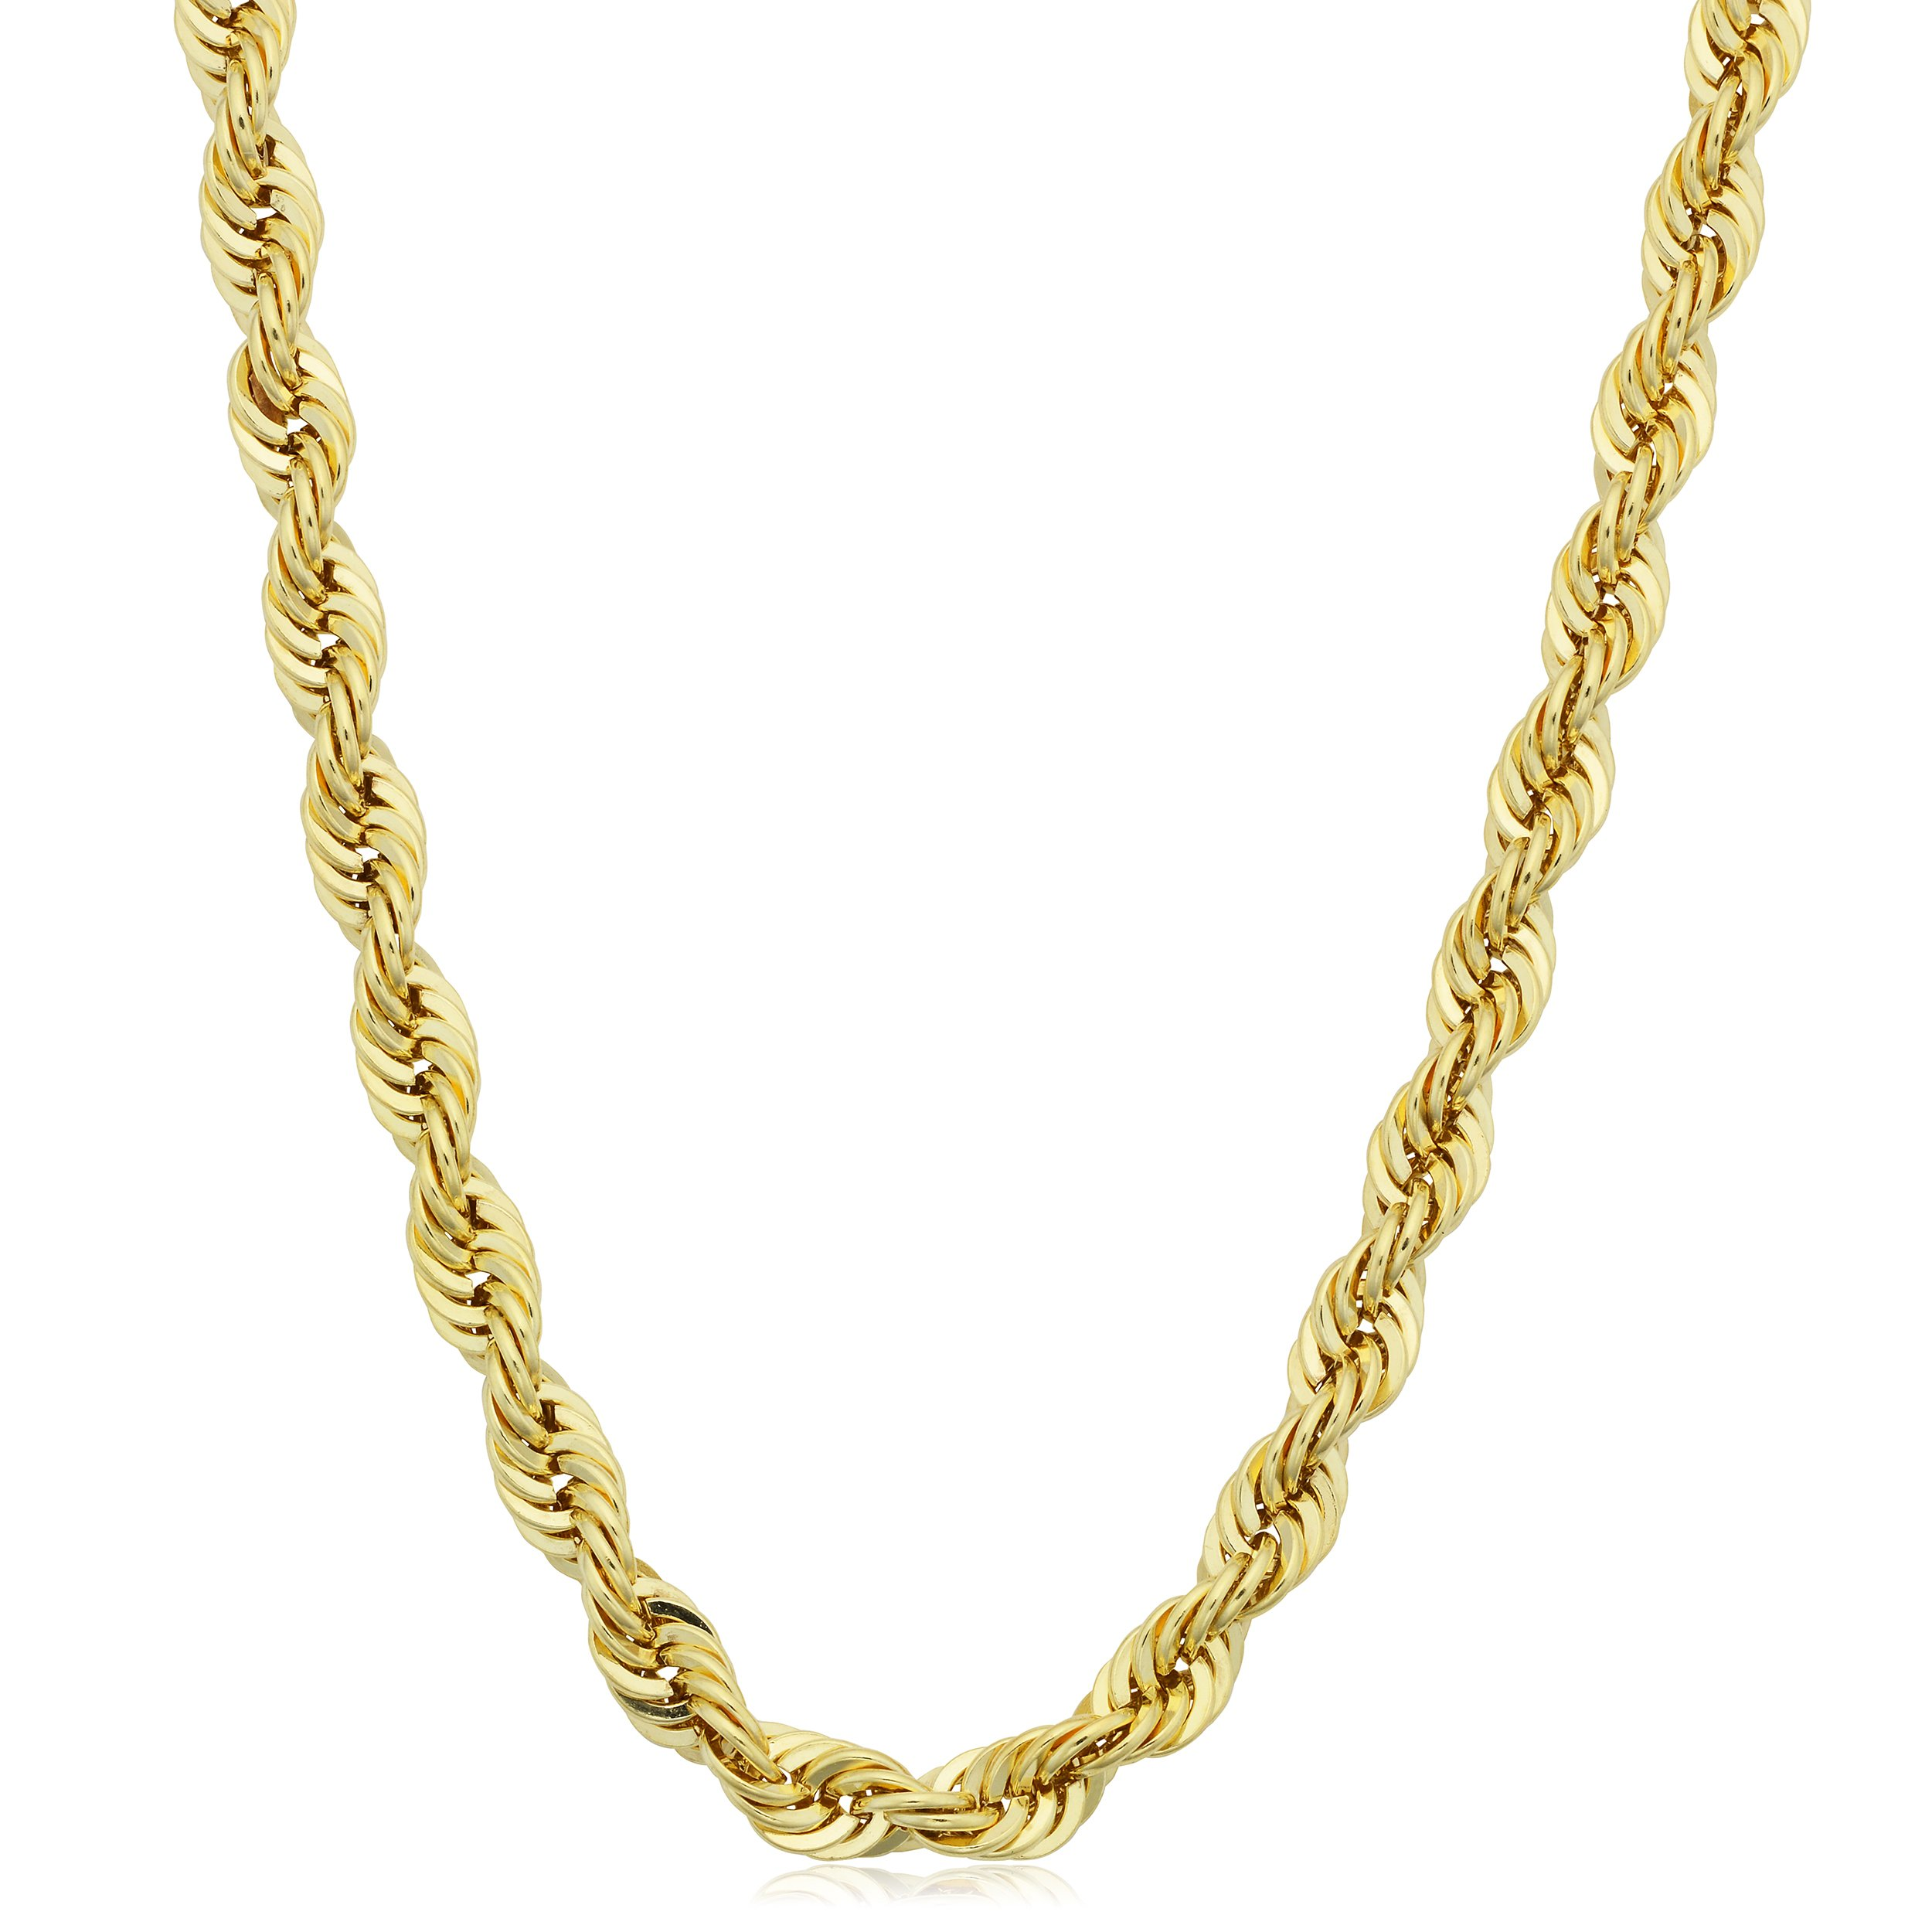 14k Yellow Gold Filled Men's 4.2mm Rope Chain Necklace (18 inch)